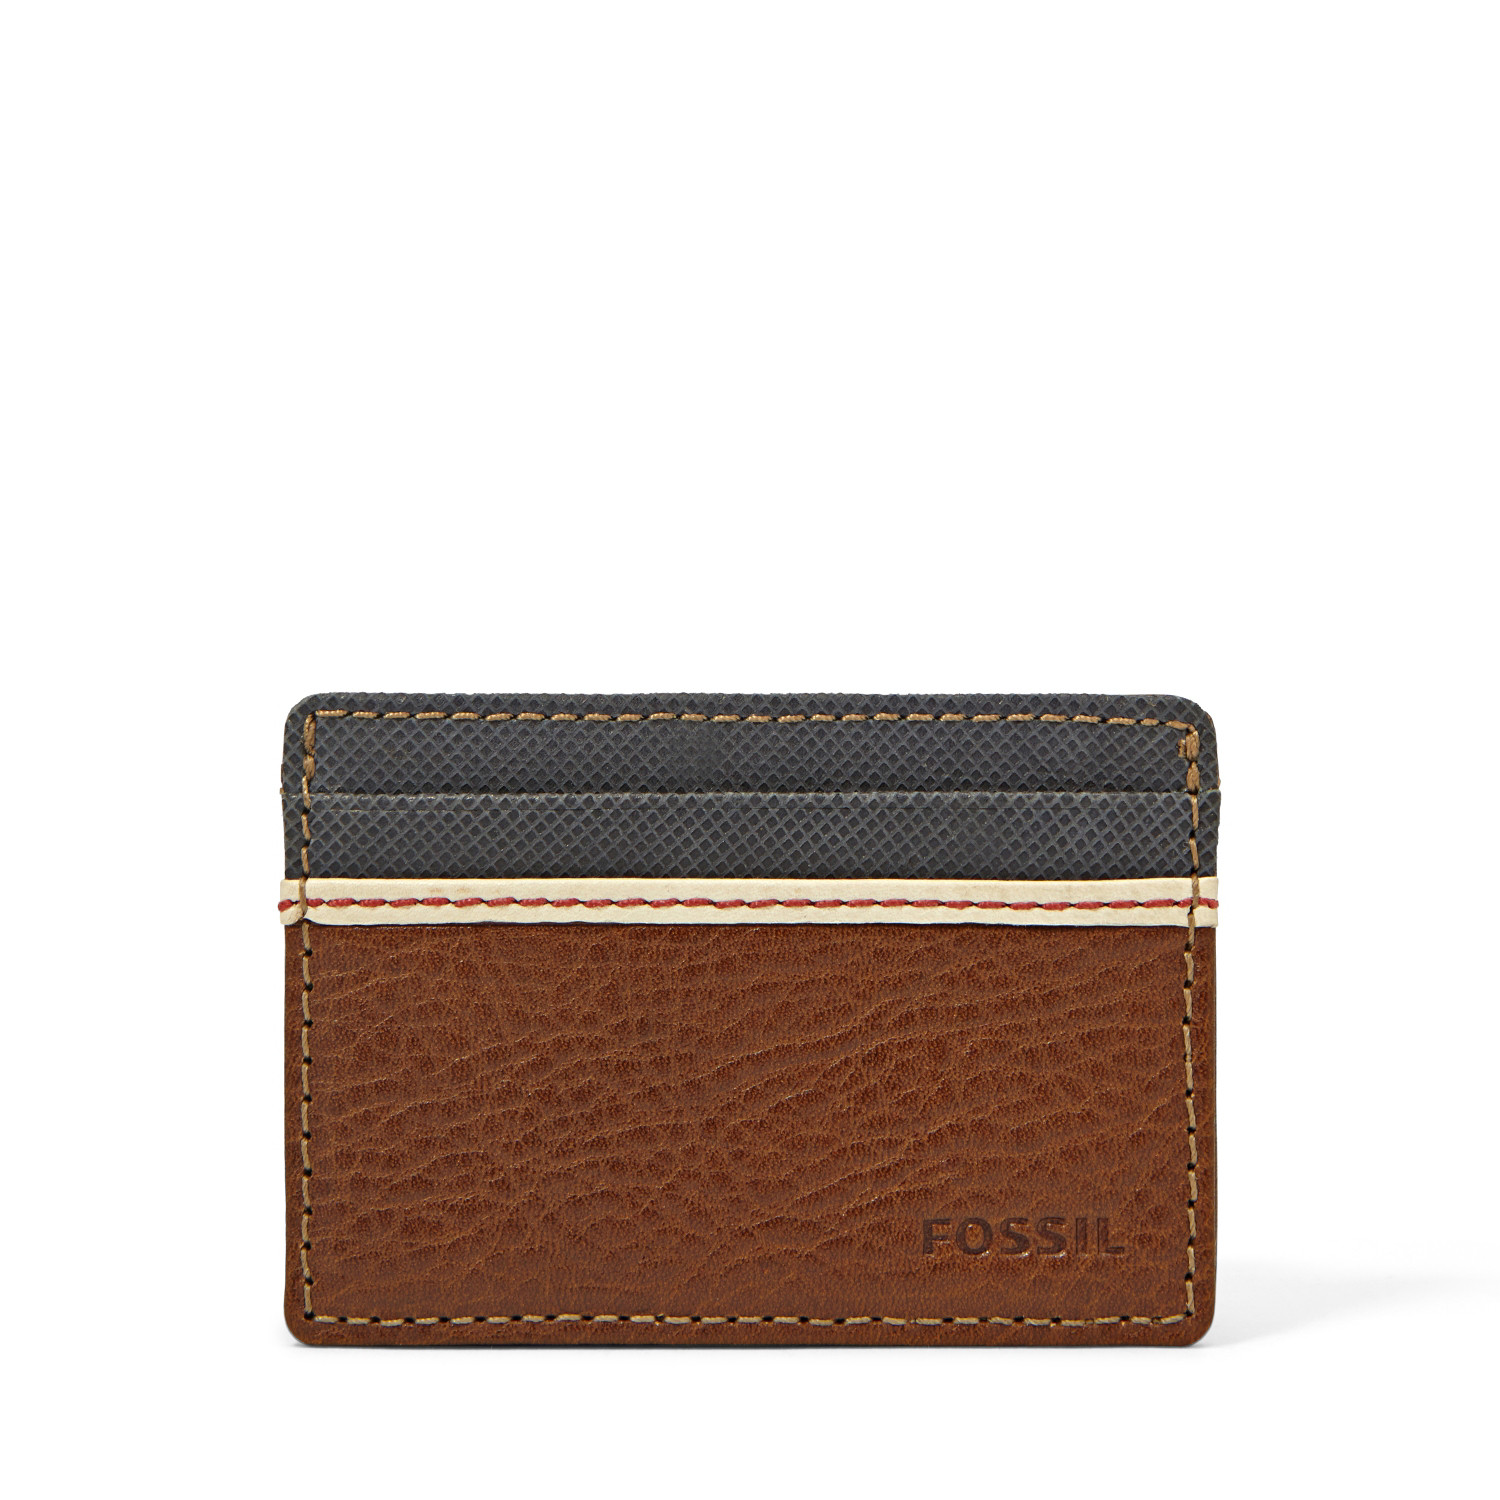 Fossil Elgin Two Tone Leather ID Card Case Front Pocket Wallet Slim ...